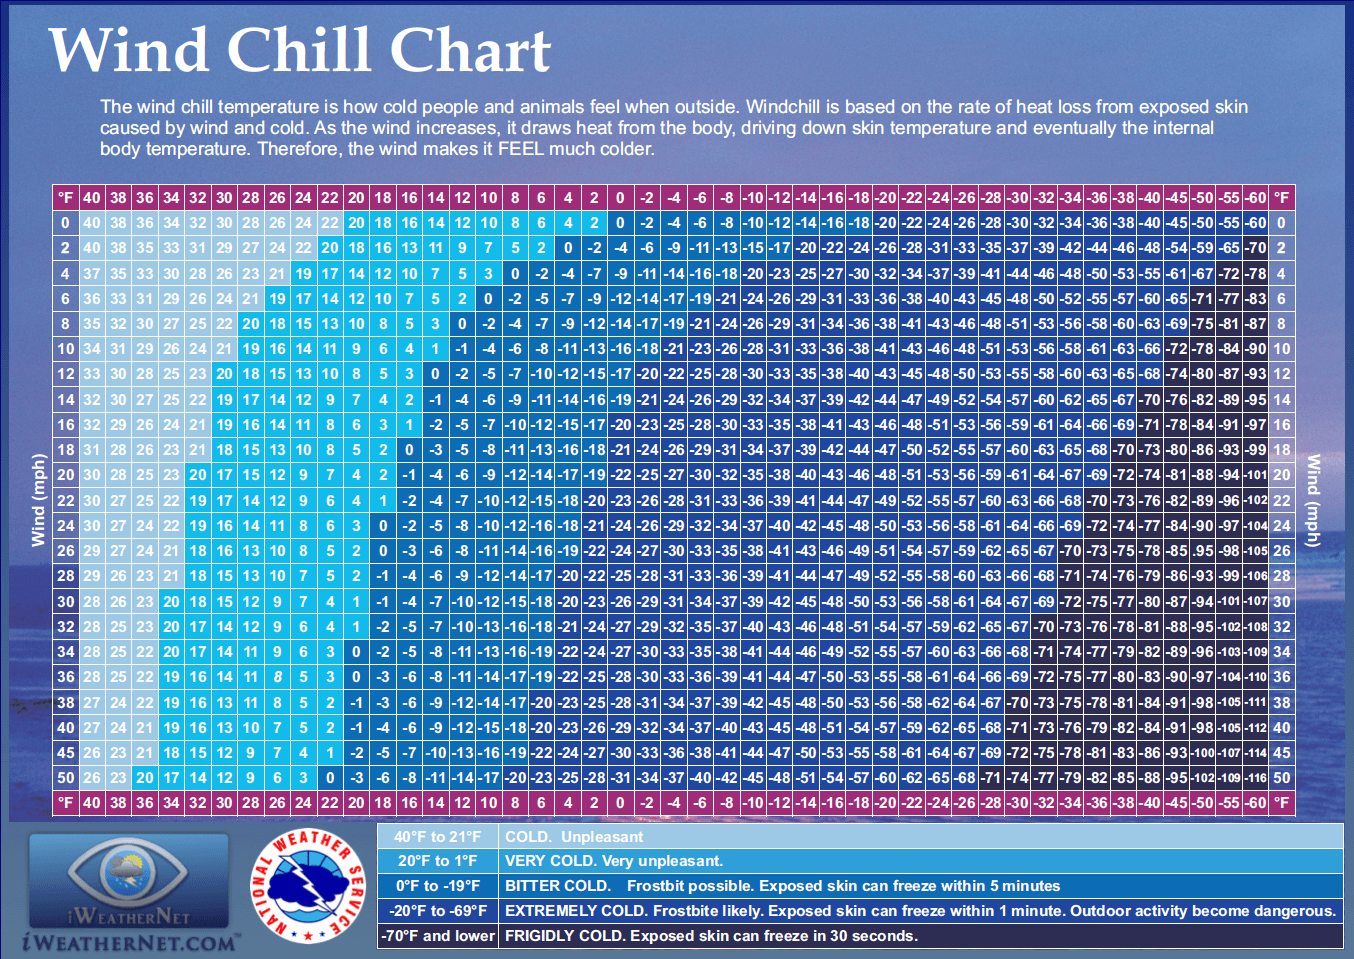 Wind Chill In Texas Dfw Amp Wind Chill Calculator Iweathernet